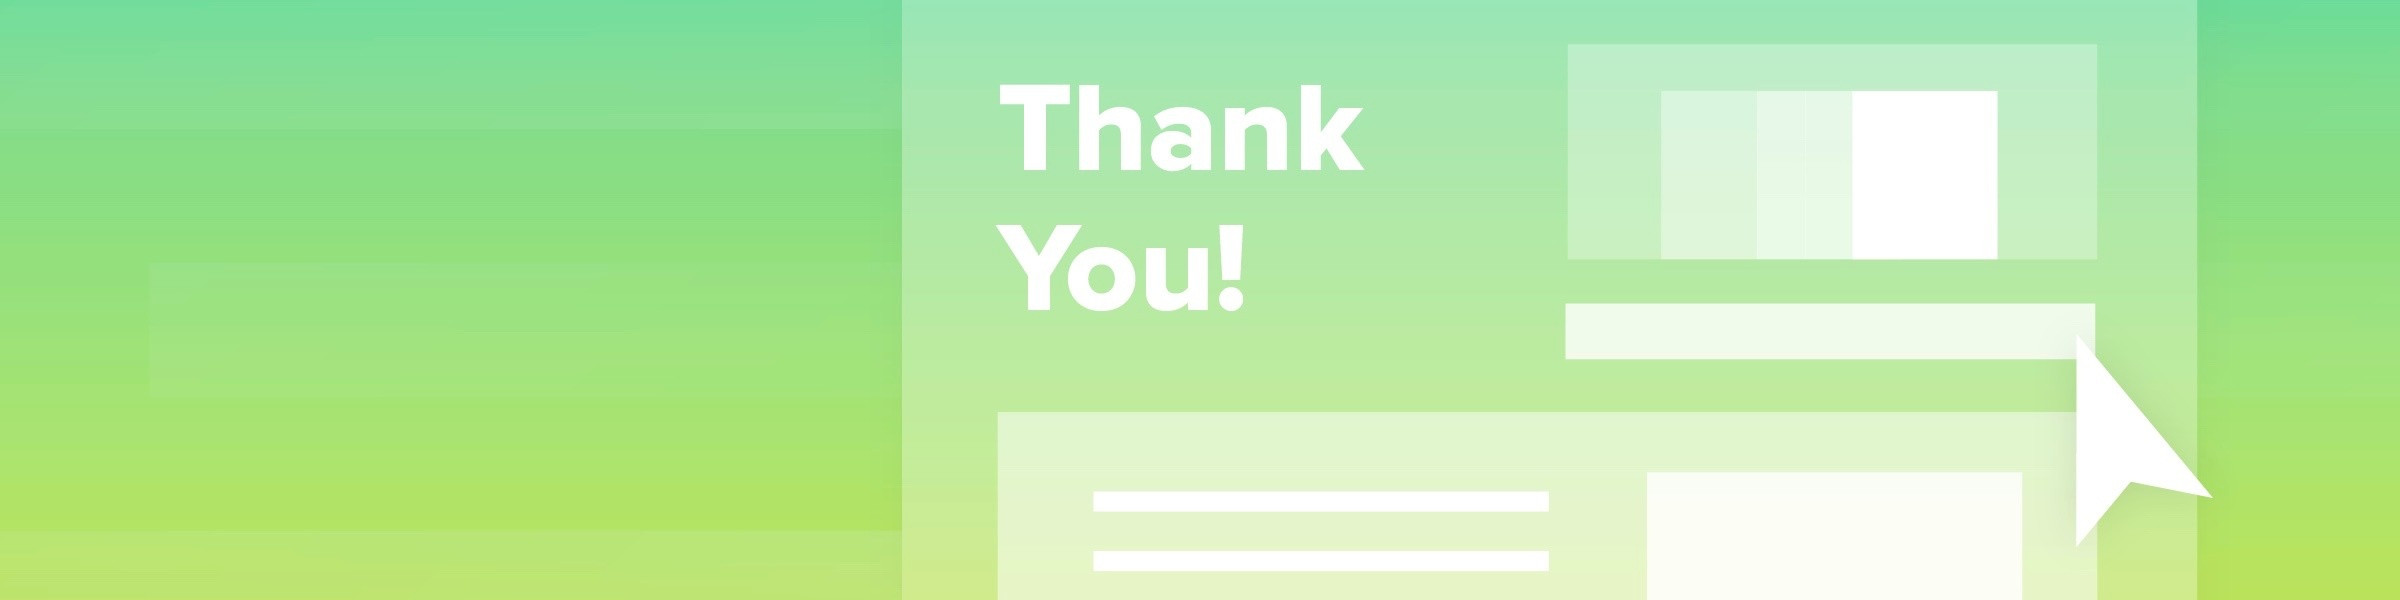 Four Tactics for Improving B2B Website Conversions Using Thank You Pages Featured AngleB